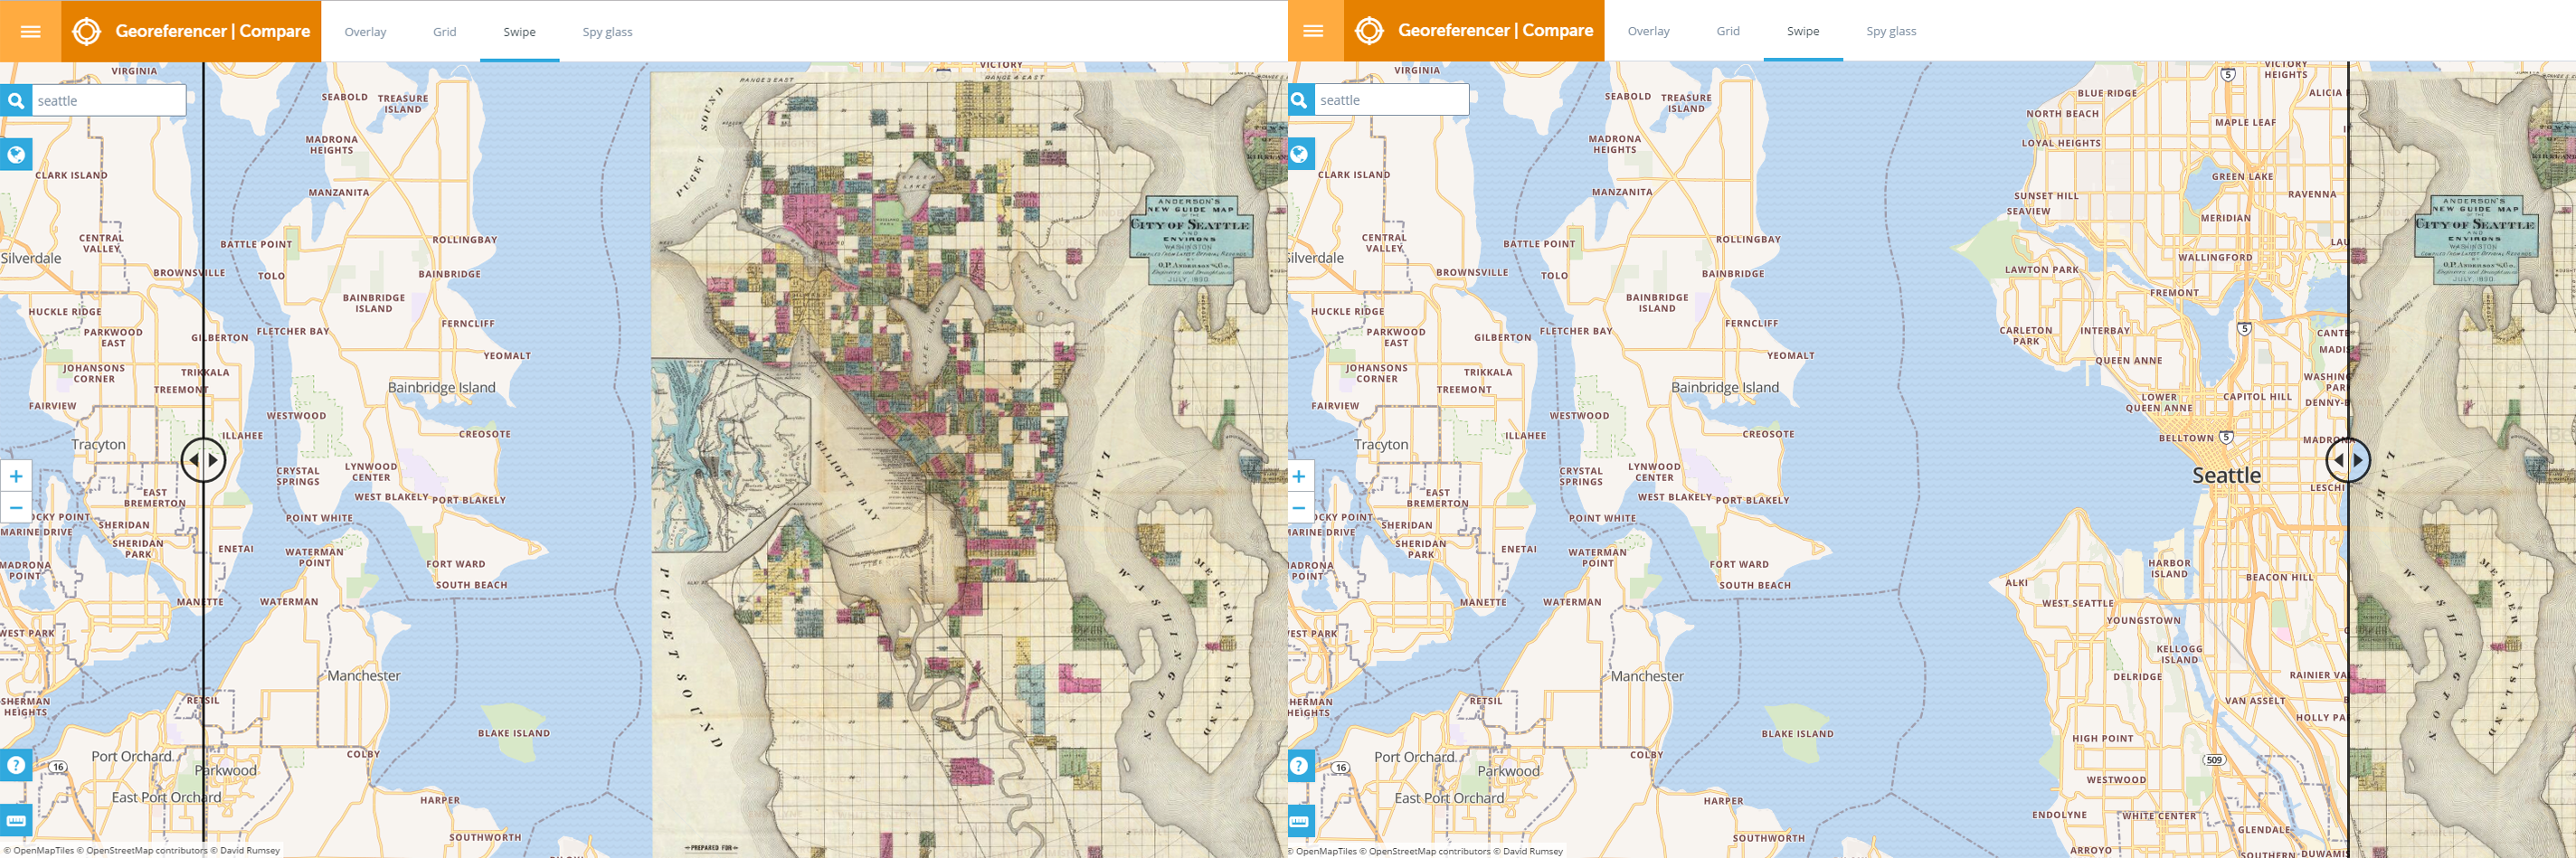 This online tool lets you compare historical maps to current data